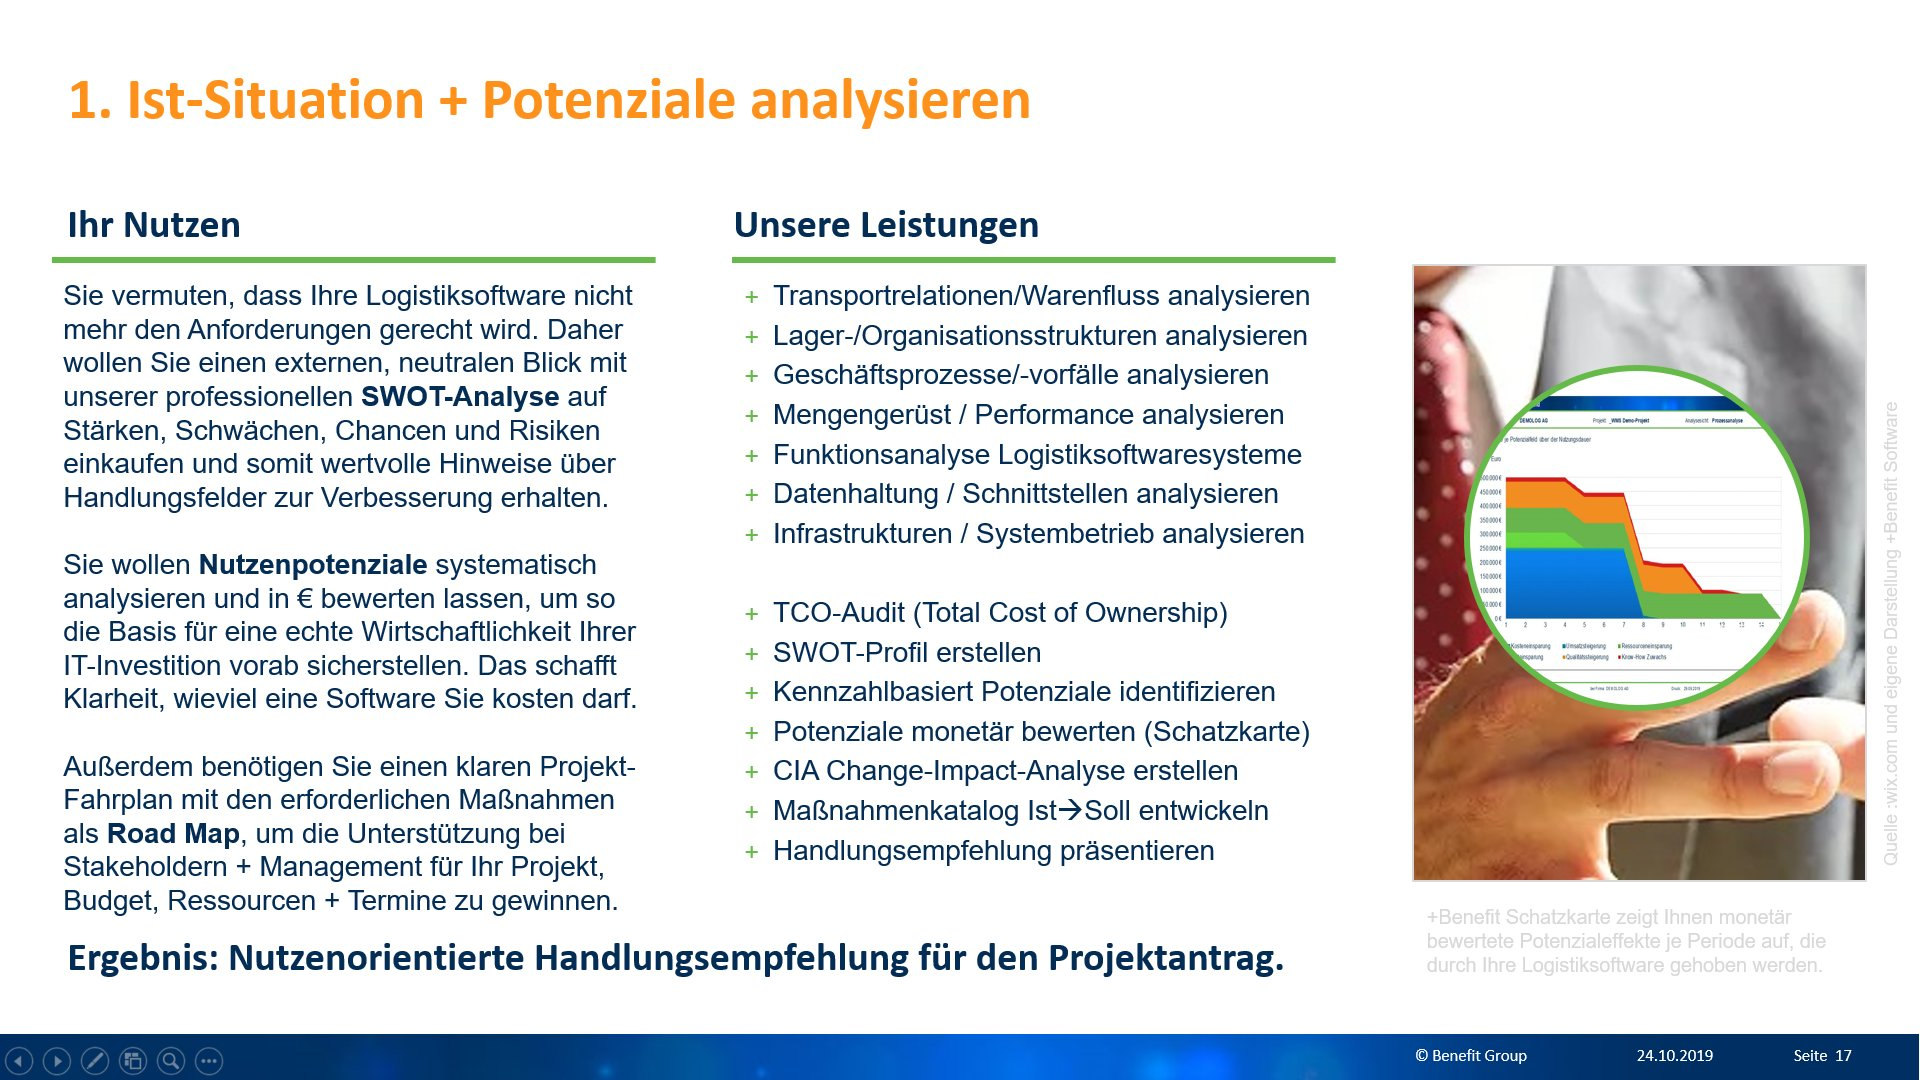 1 Situation + Potenziale analysieren